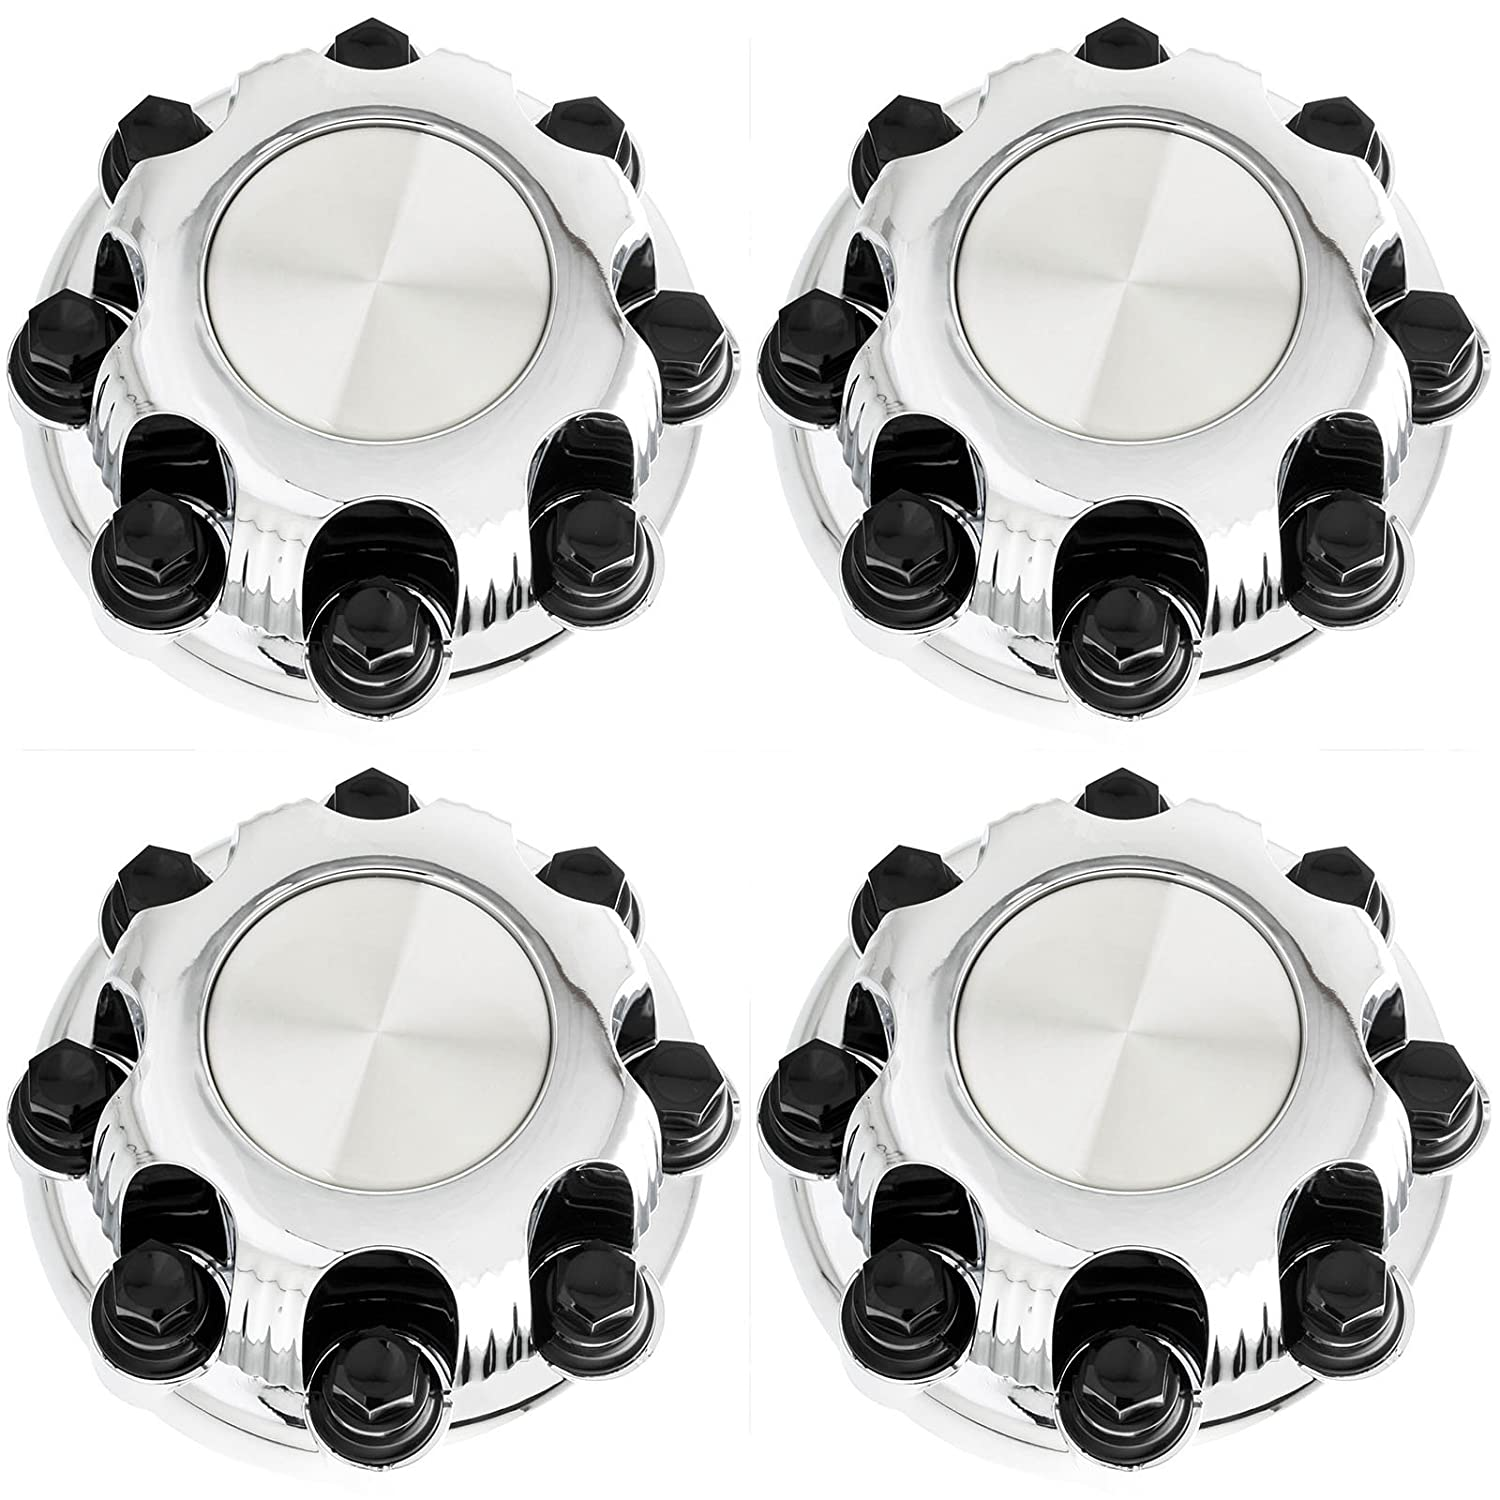 Set of 4 Replacement Aftermarket Center Caps Hub Cover Fits 16' Inch 8 Lug Wheel - Part Number: IWCC5079C Coast to Coast WCCC-5079-CH-SINGLE